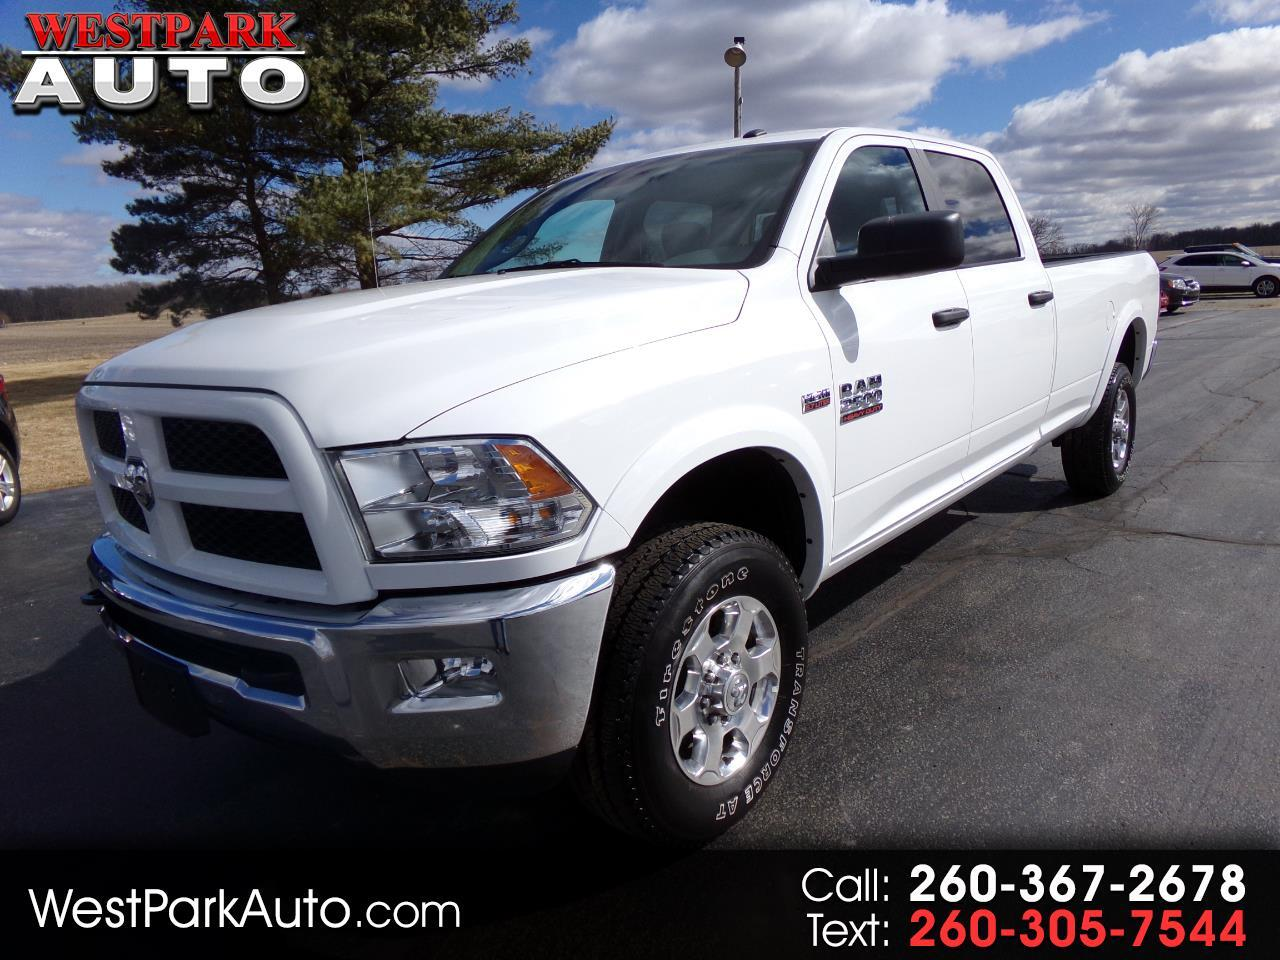 2018 RAM 2500 Outdoorsman 4x4 Crew Cab 8' Box